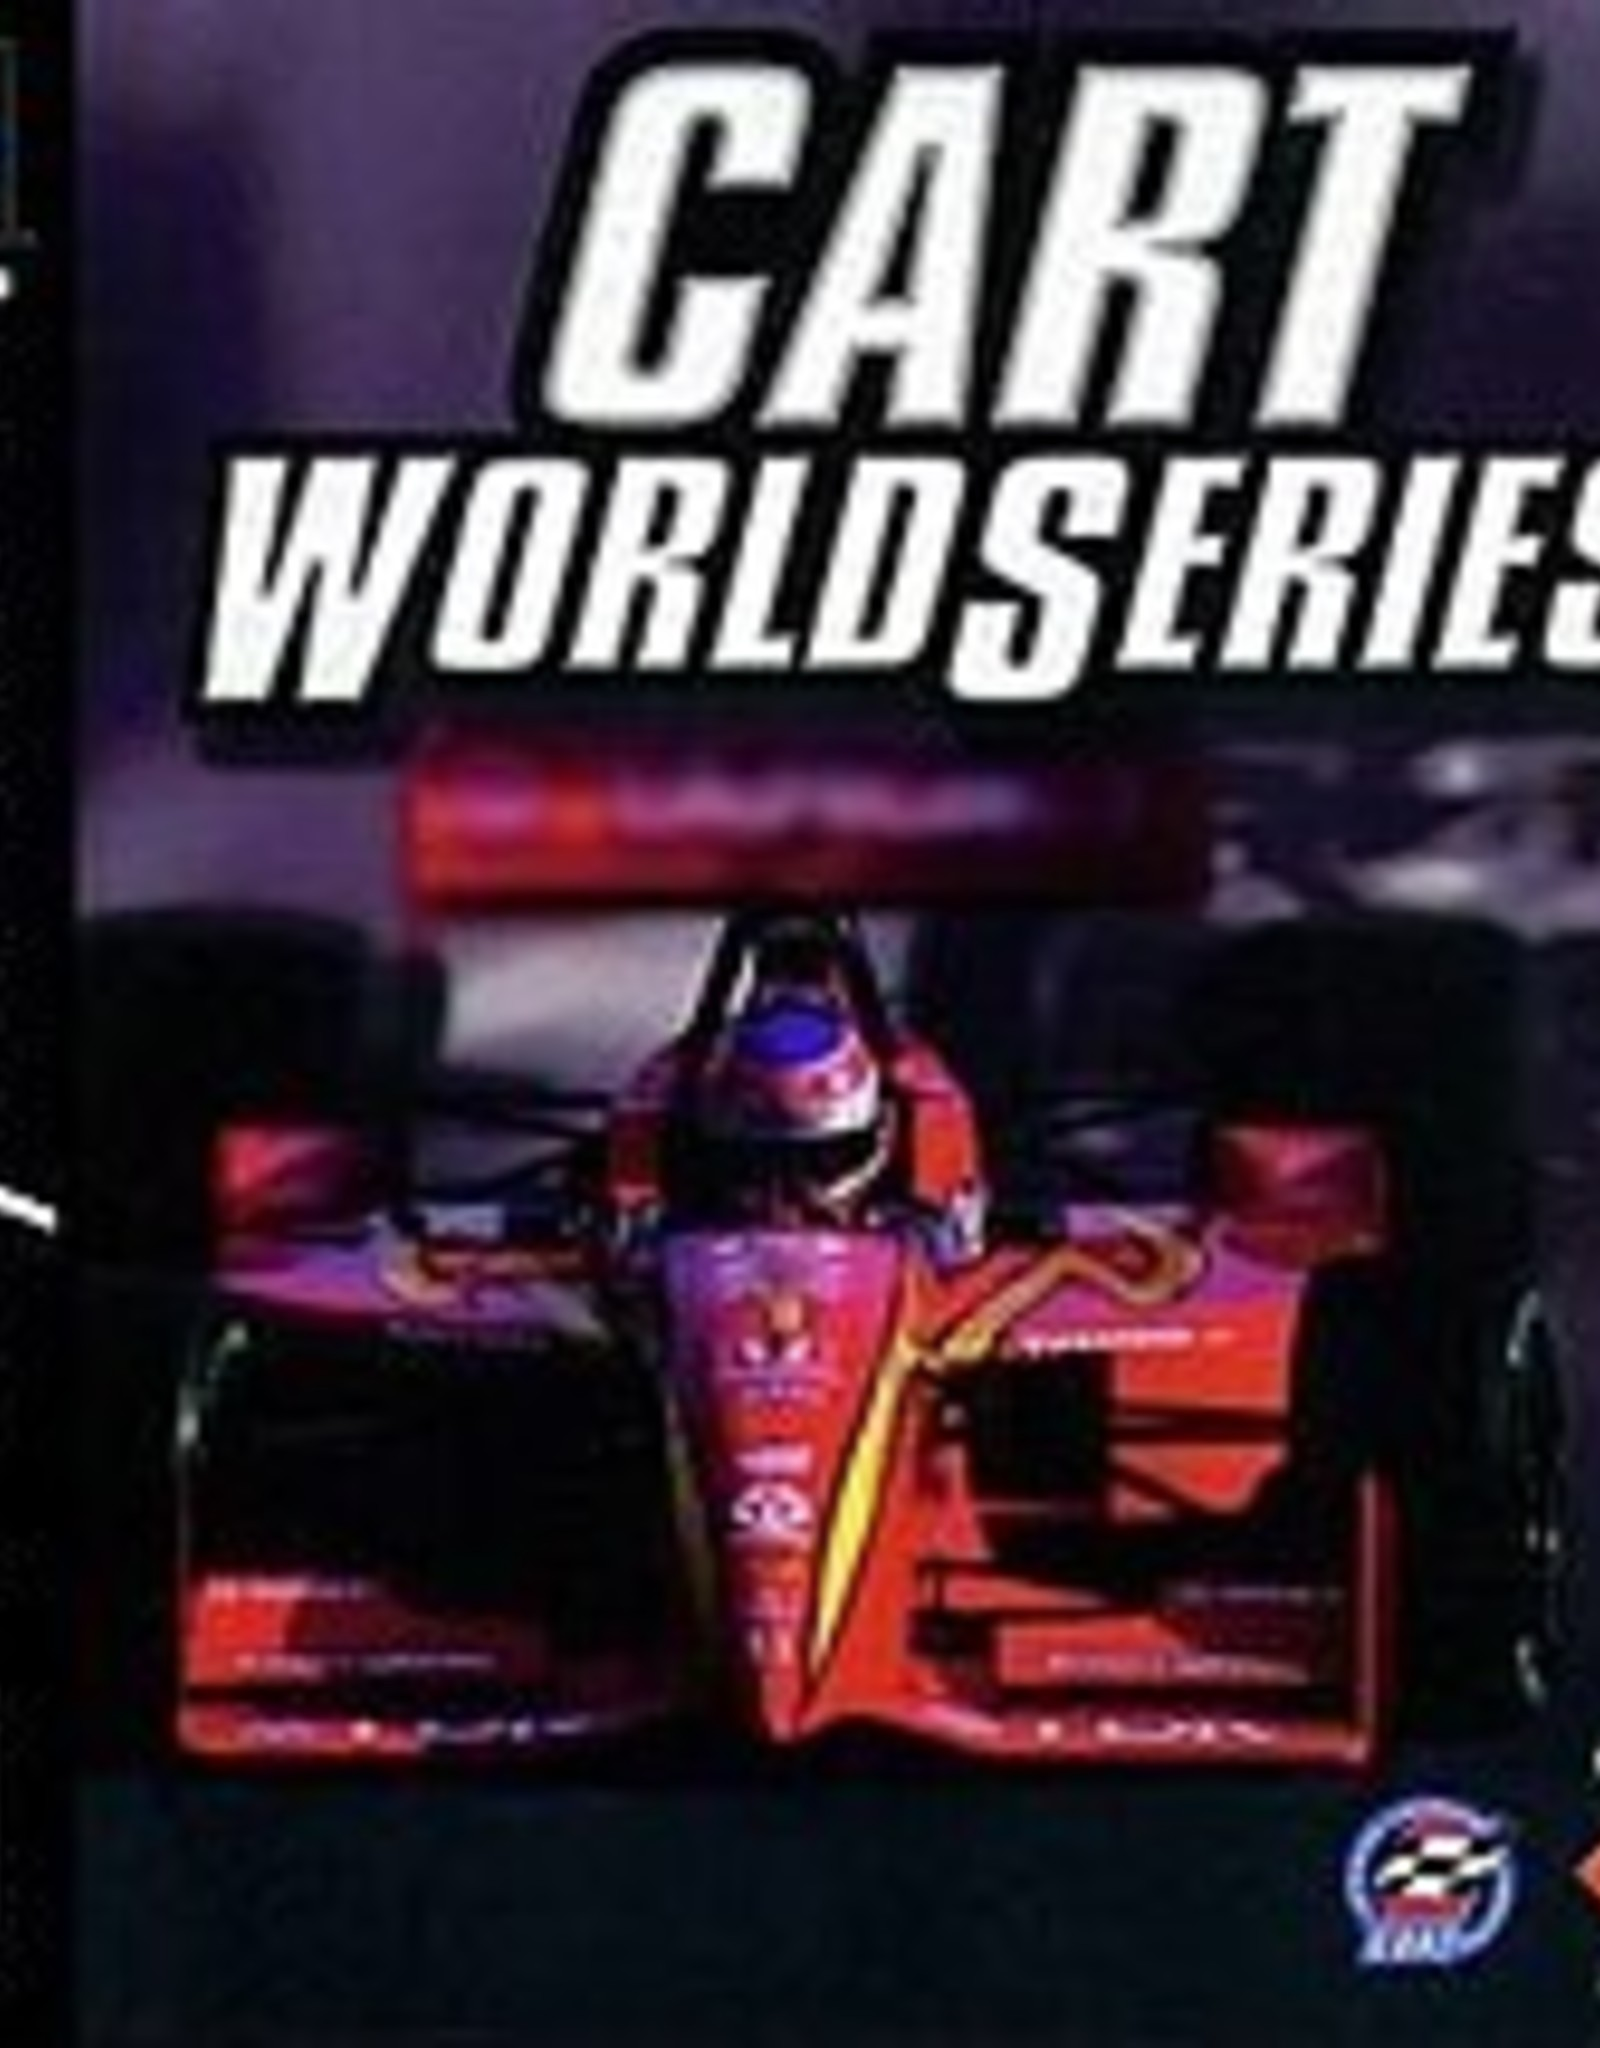 Cart World Series - PS1 PrePlayed